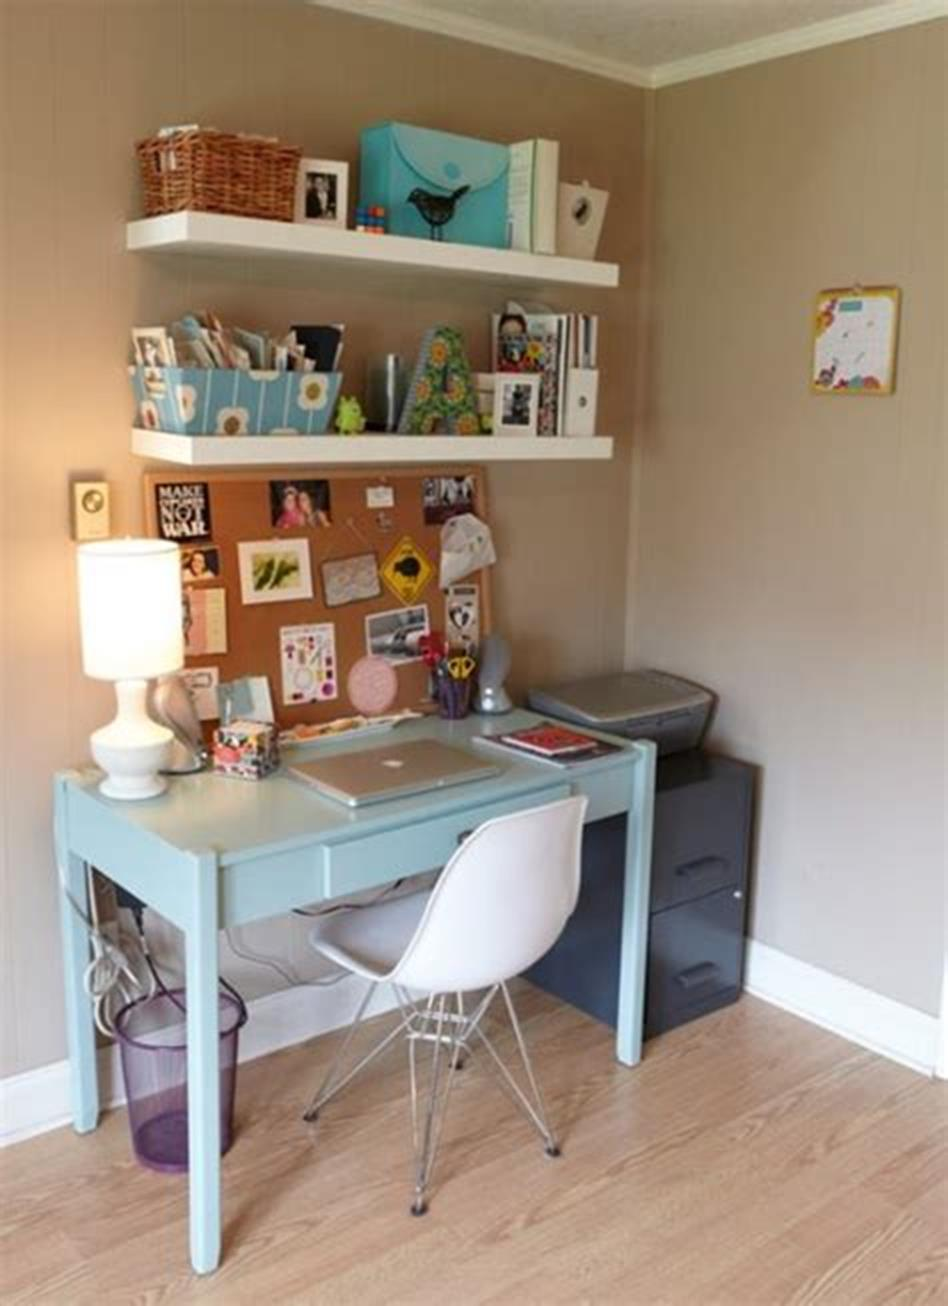 50 Best Small Space Office Decorating Ideas On a Budget 2019 66